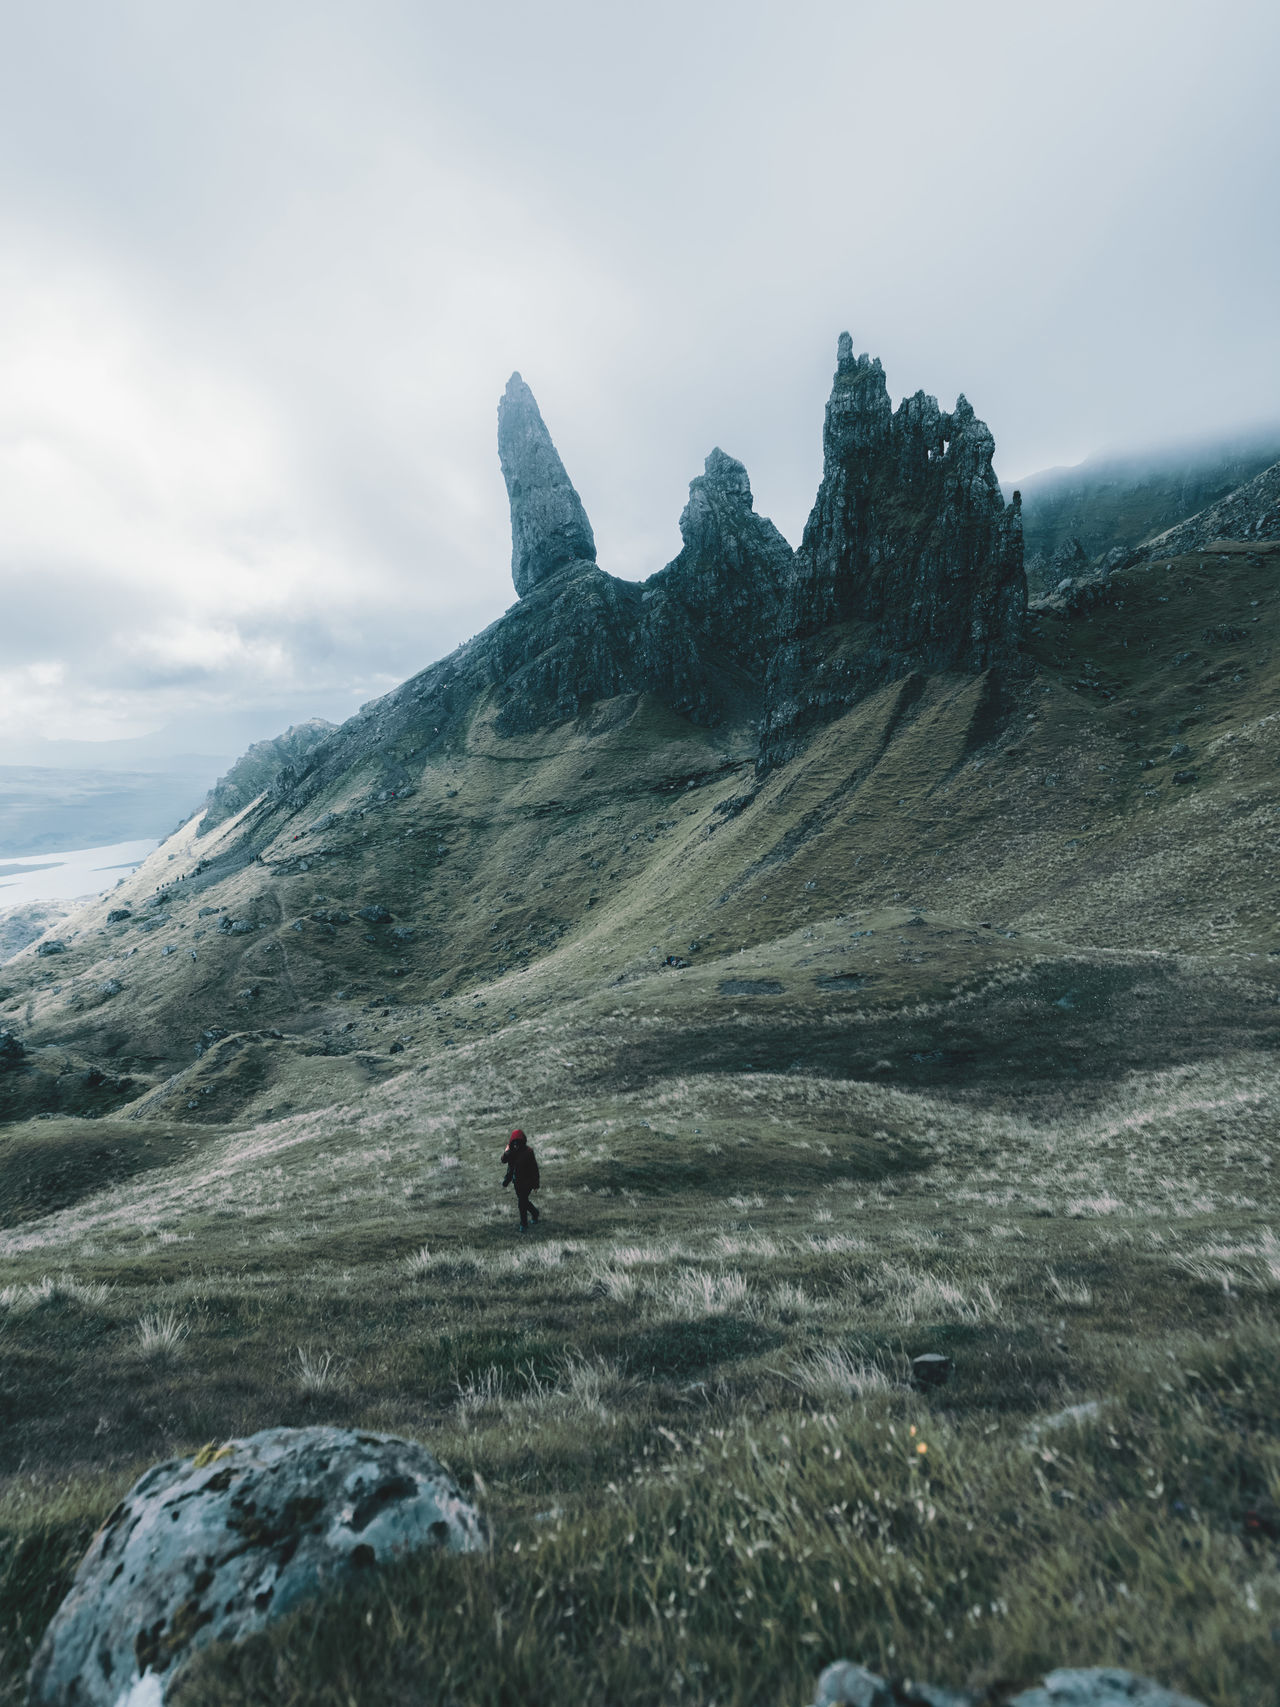 The old man of storr with a wanderer Adult Beauty In Nature Cold Temperature Day Isle Of Skye Landscape Mountain Nature Old Man Of Storr One Person Outdoors People Scenics Sky